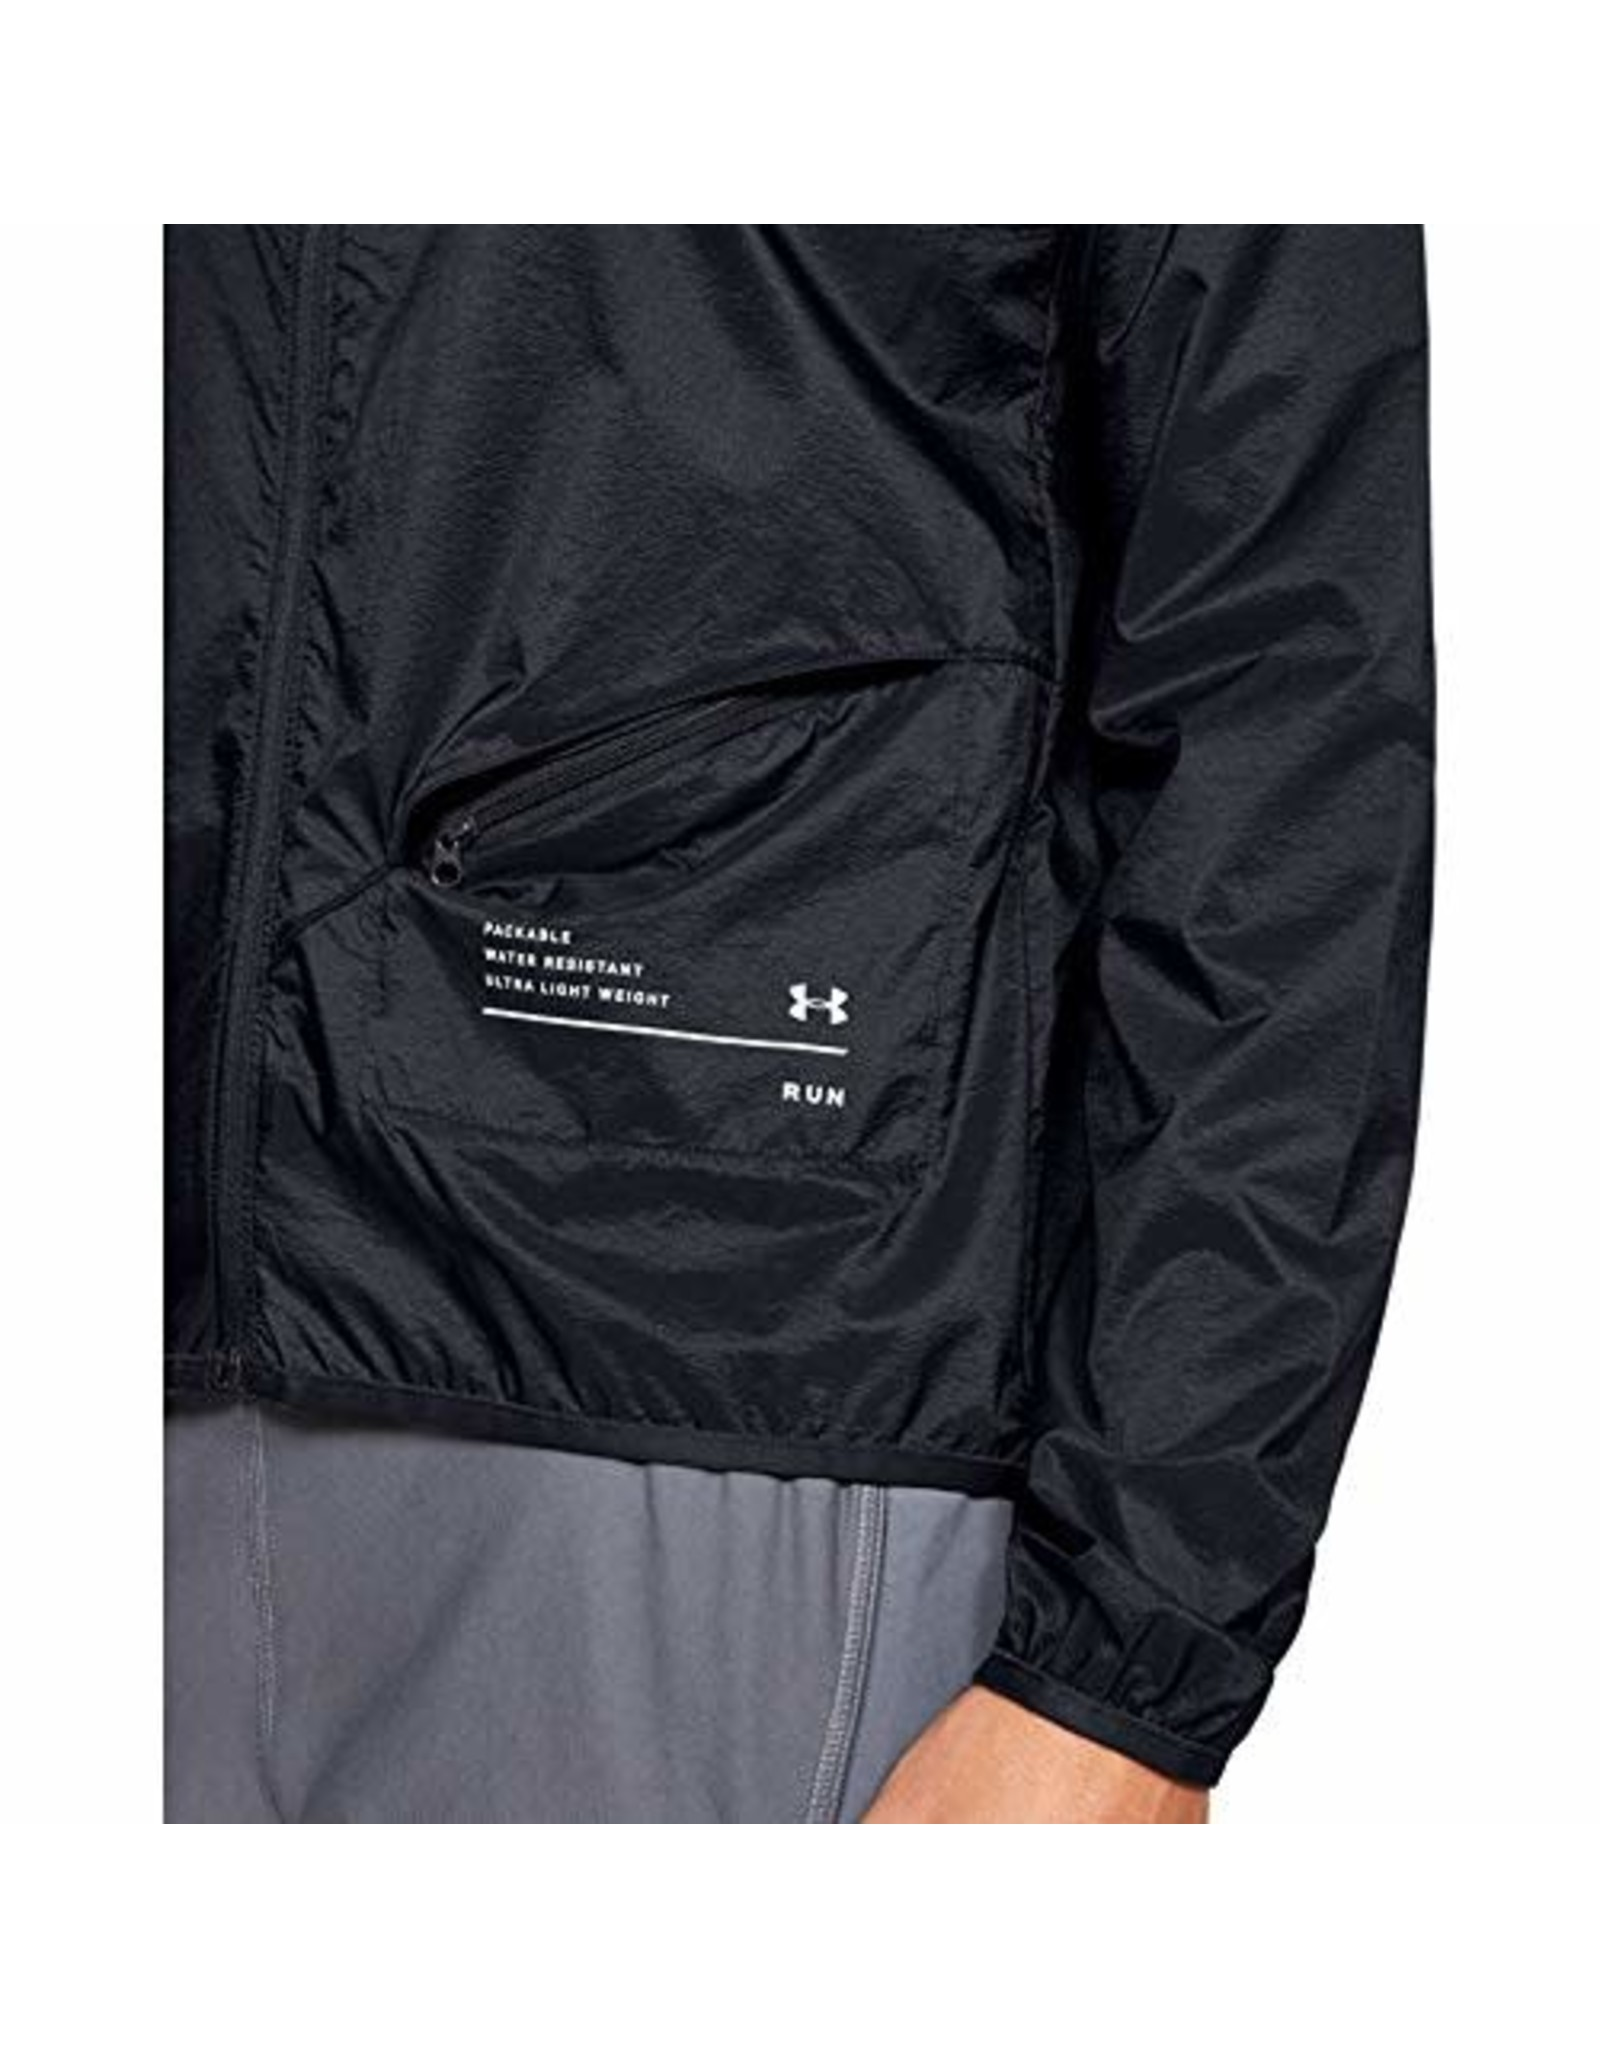 Under Armour Qualifier STORM packable jacket - black